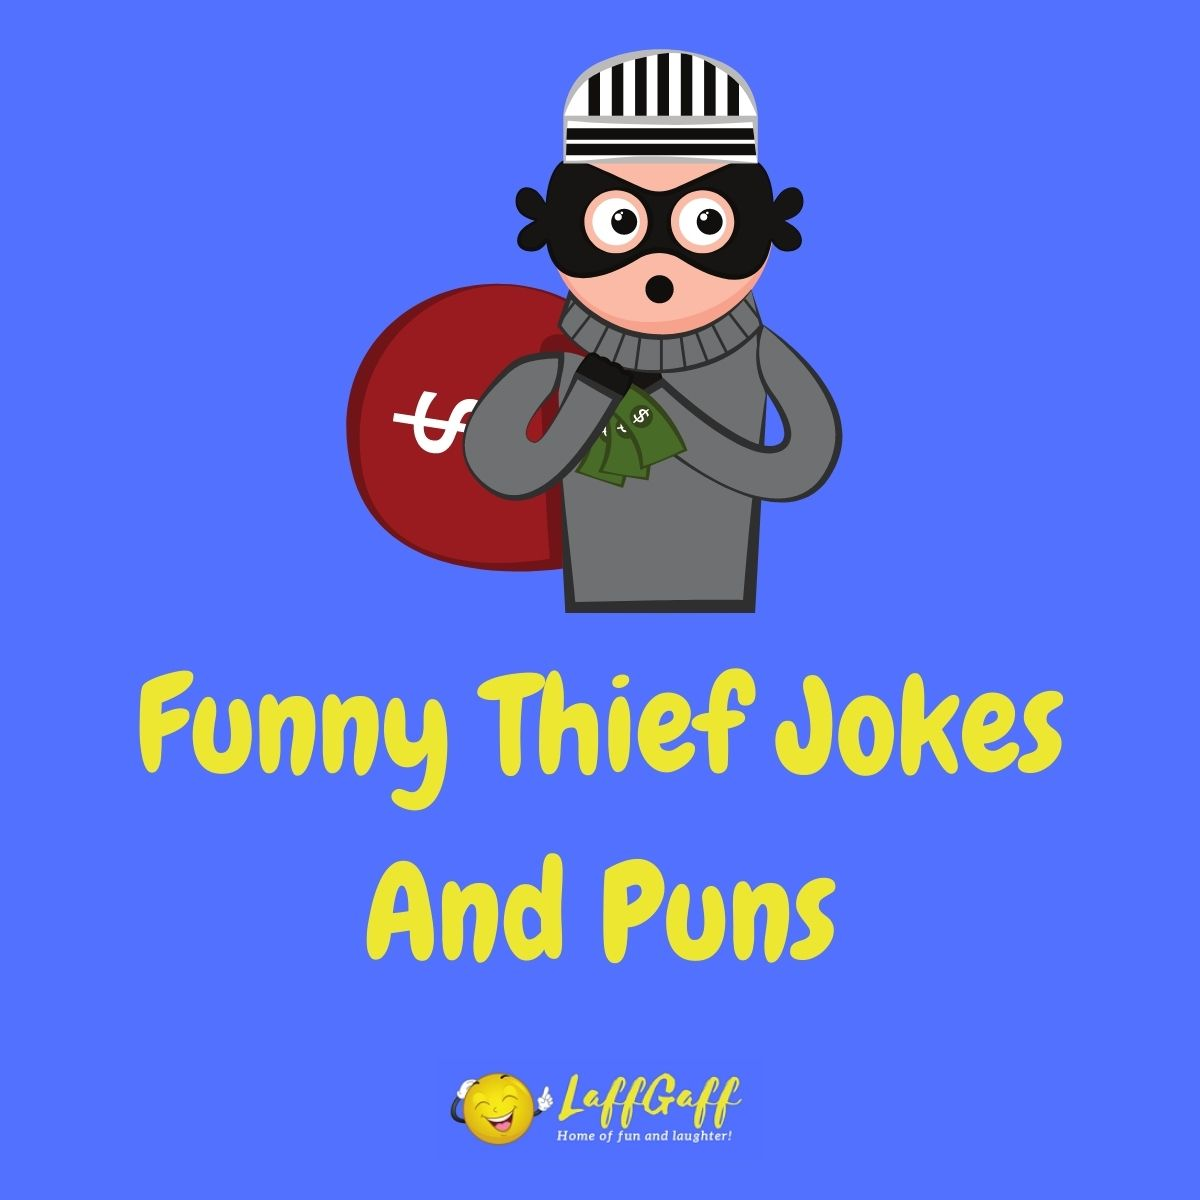 Featured image for a page of funny thief jokes and puns.